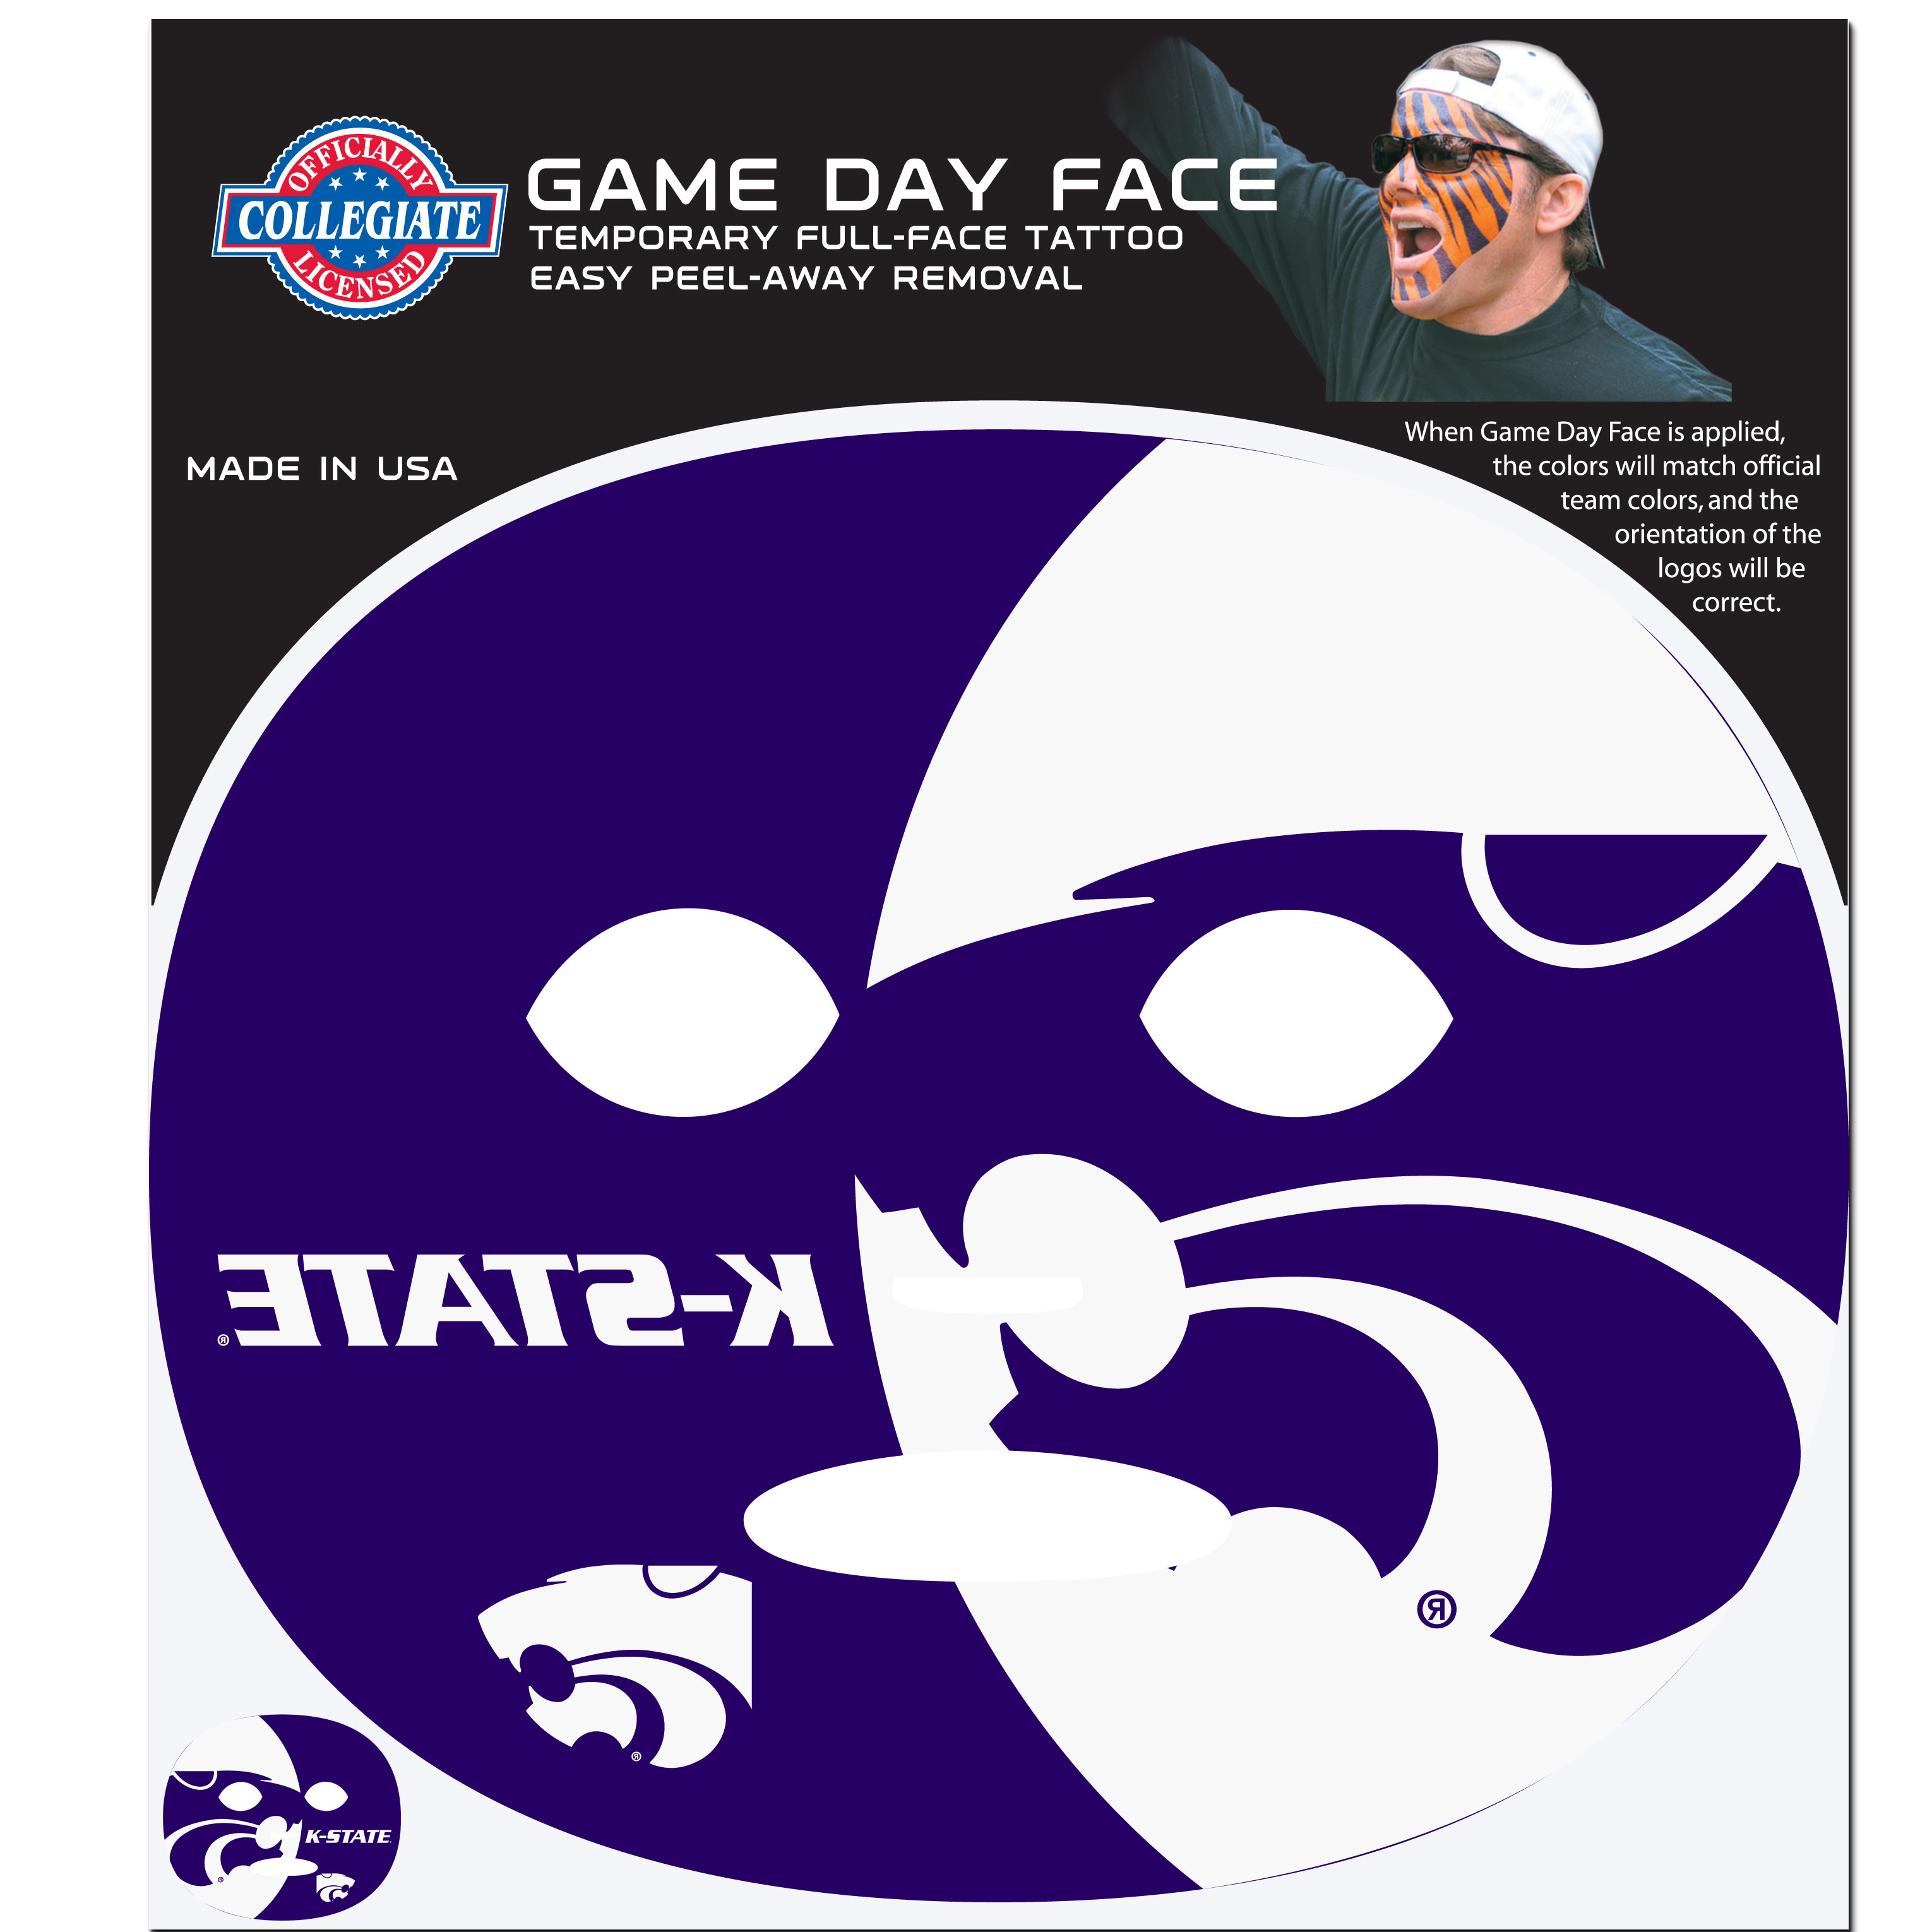 Kansas St. Wildcats Set of 4 Game Day Faces - No better way to show your team pride than by painting your face. Siskiyou's Game Day Face Temporary Tattoo isn't your typical face paint. It is a water based application that doesn't smudge, smear or sweat off while you're wearing it and easily peels off after you're done celebrating your team's big Win! The temporary tattoo is large enough to trim down to fit your face. Our Game Day Face Temporary Tattoo's are fun for fans of all ages. You may have seen our product before, these are the same Temporary Face Tattoos as pitched on ABC's Shark Tank.